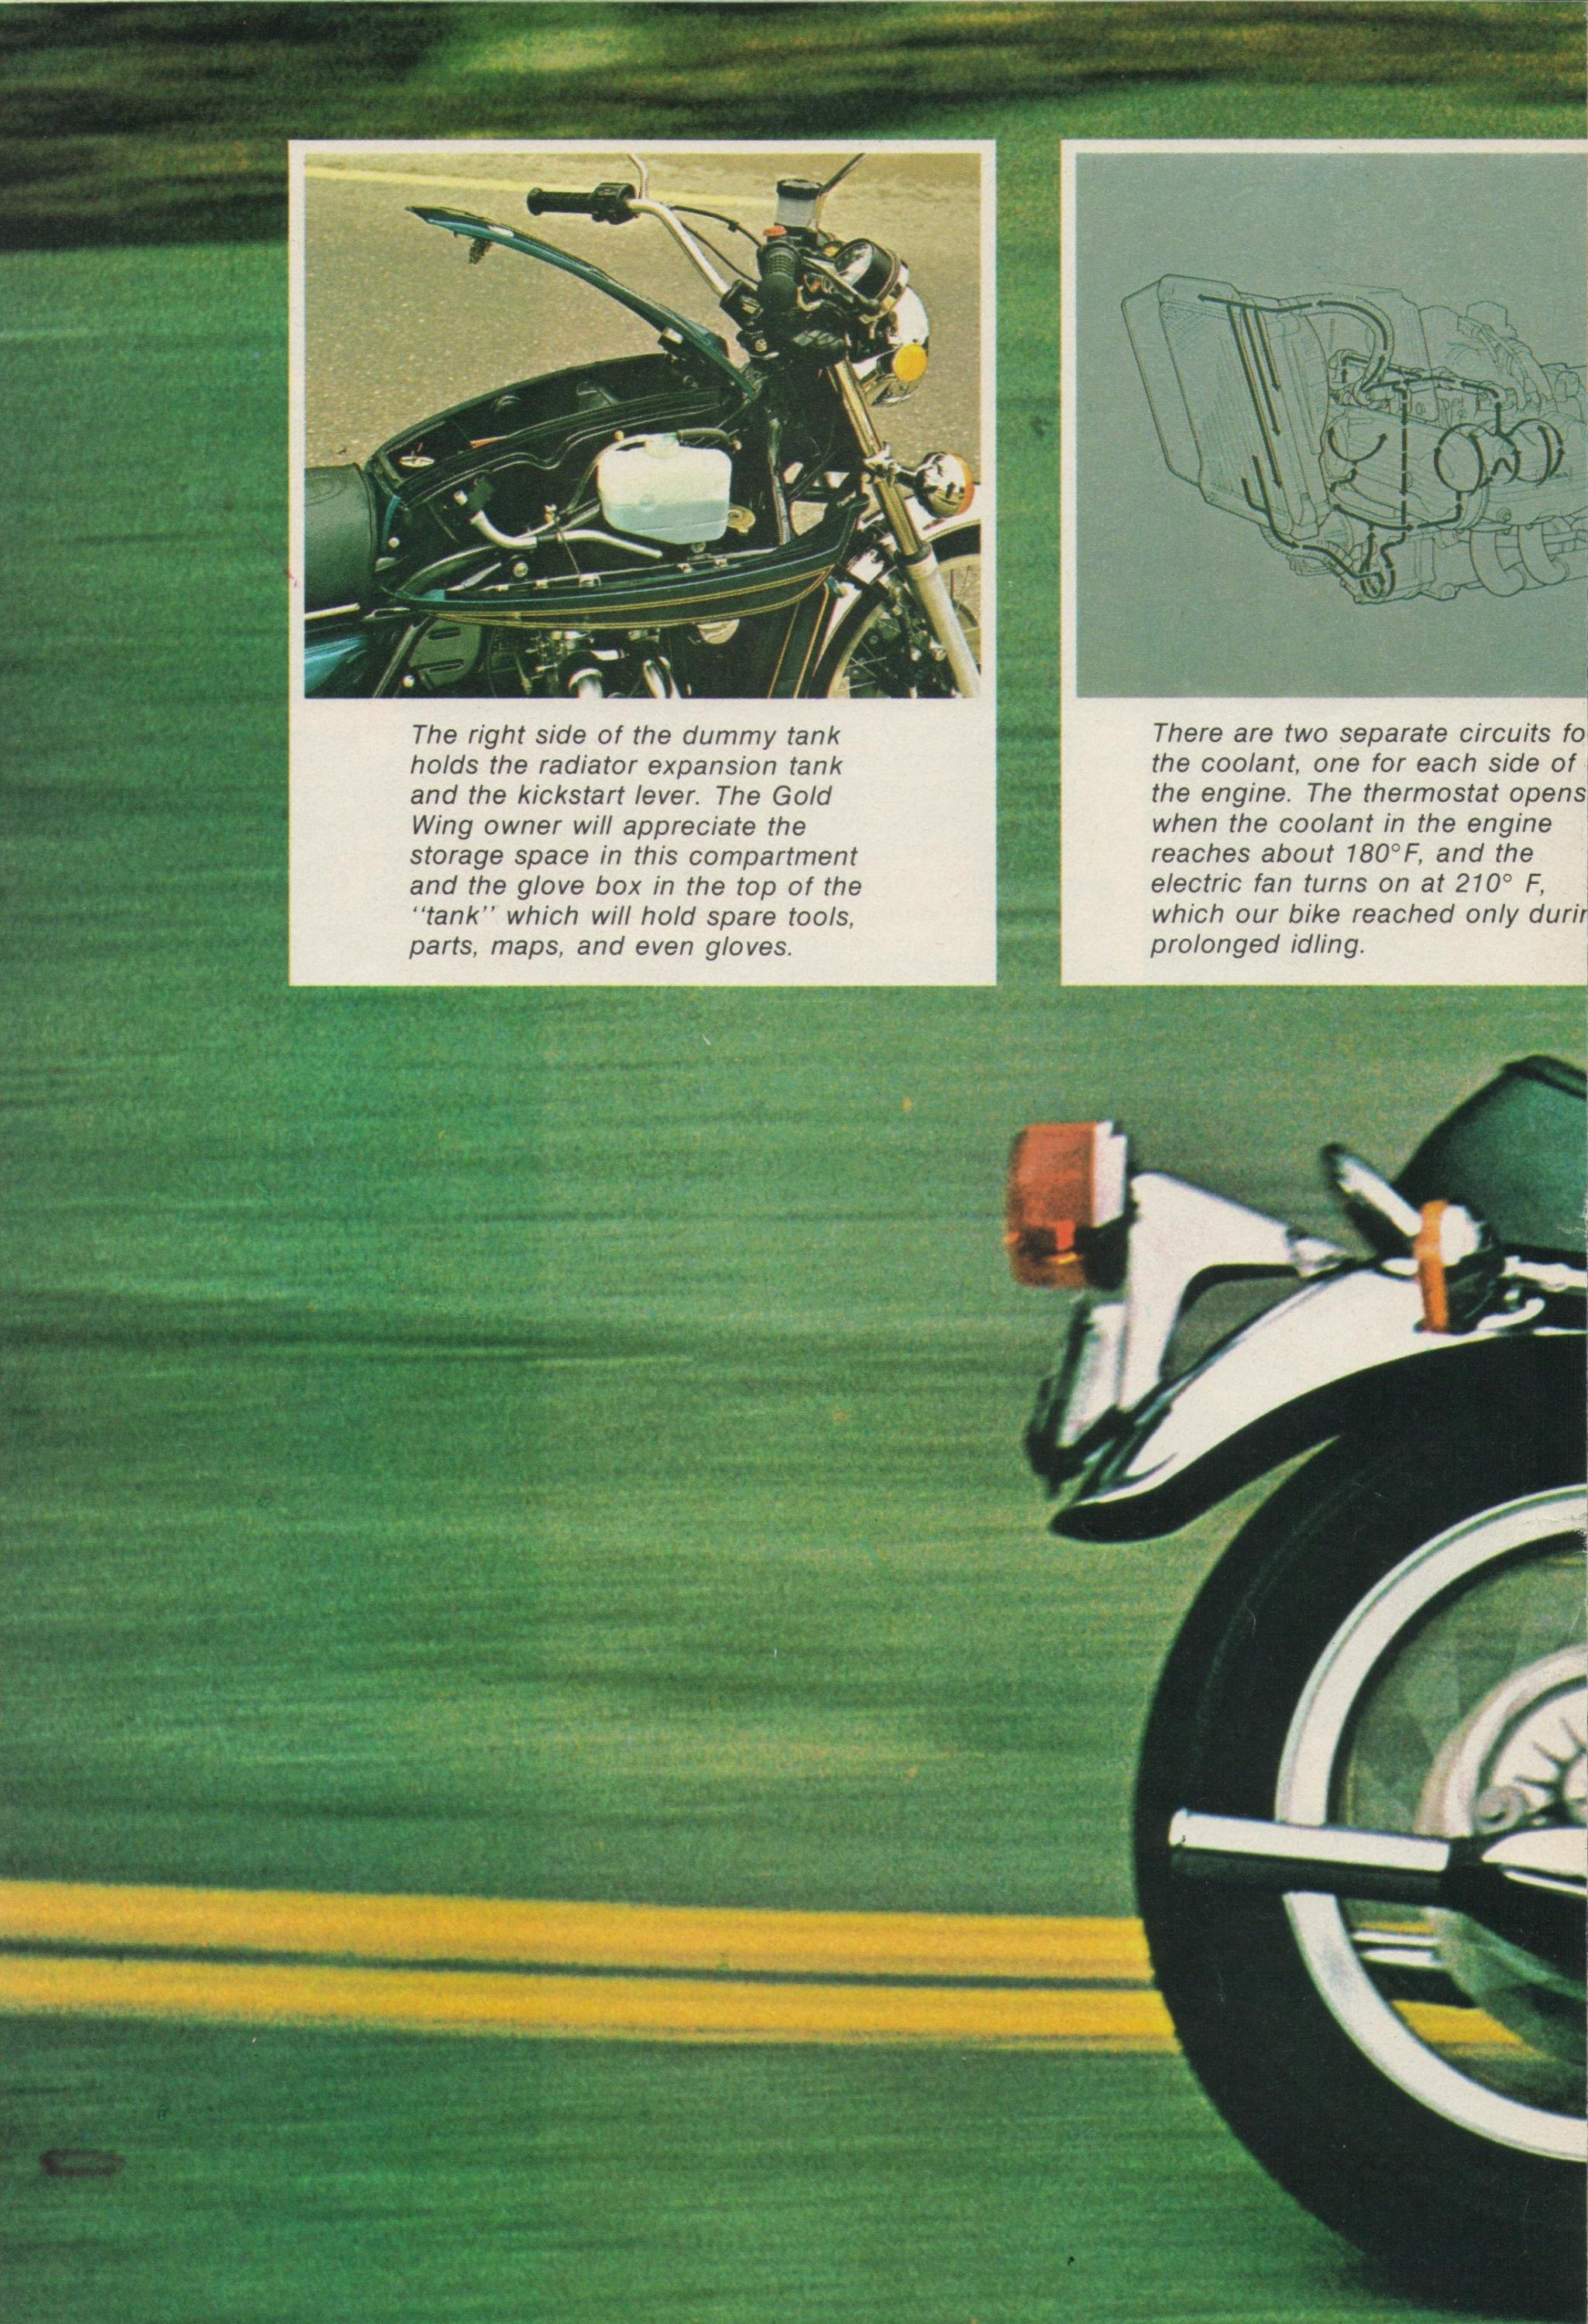 1975 GL-1000 test report Cycle Guide Magazine April 1975-1975-gl-1000-test-report-p.8.jpg